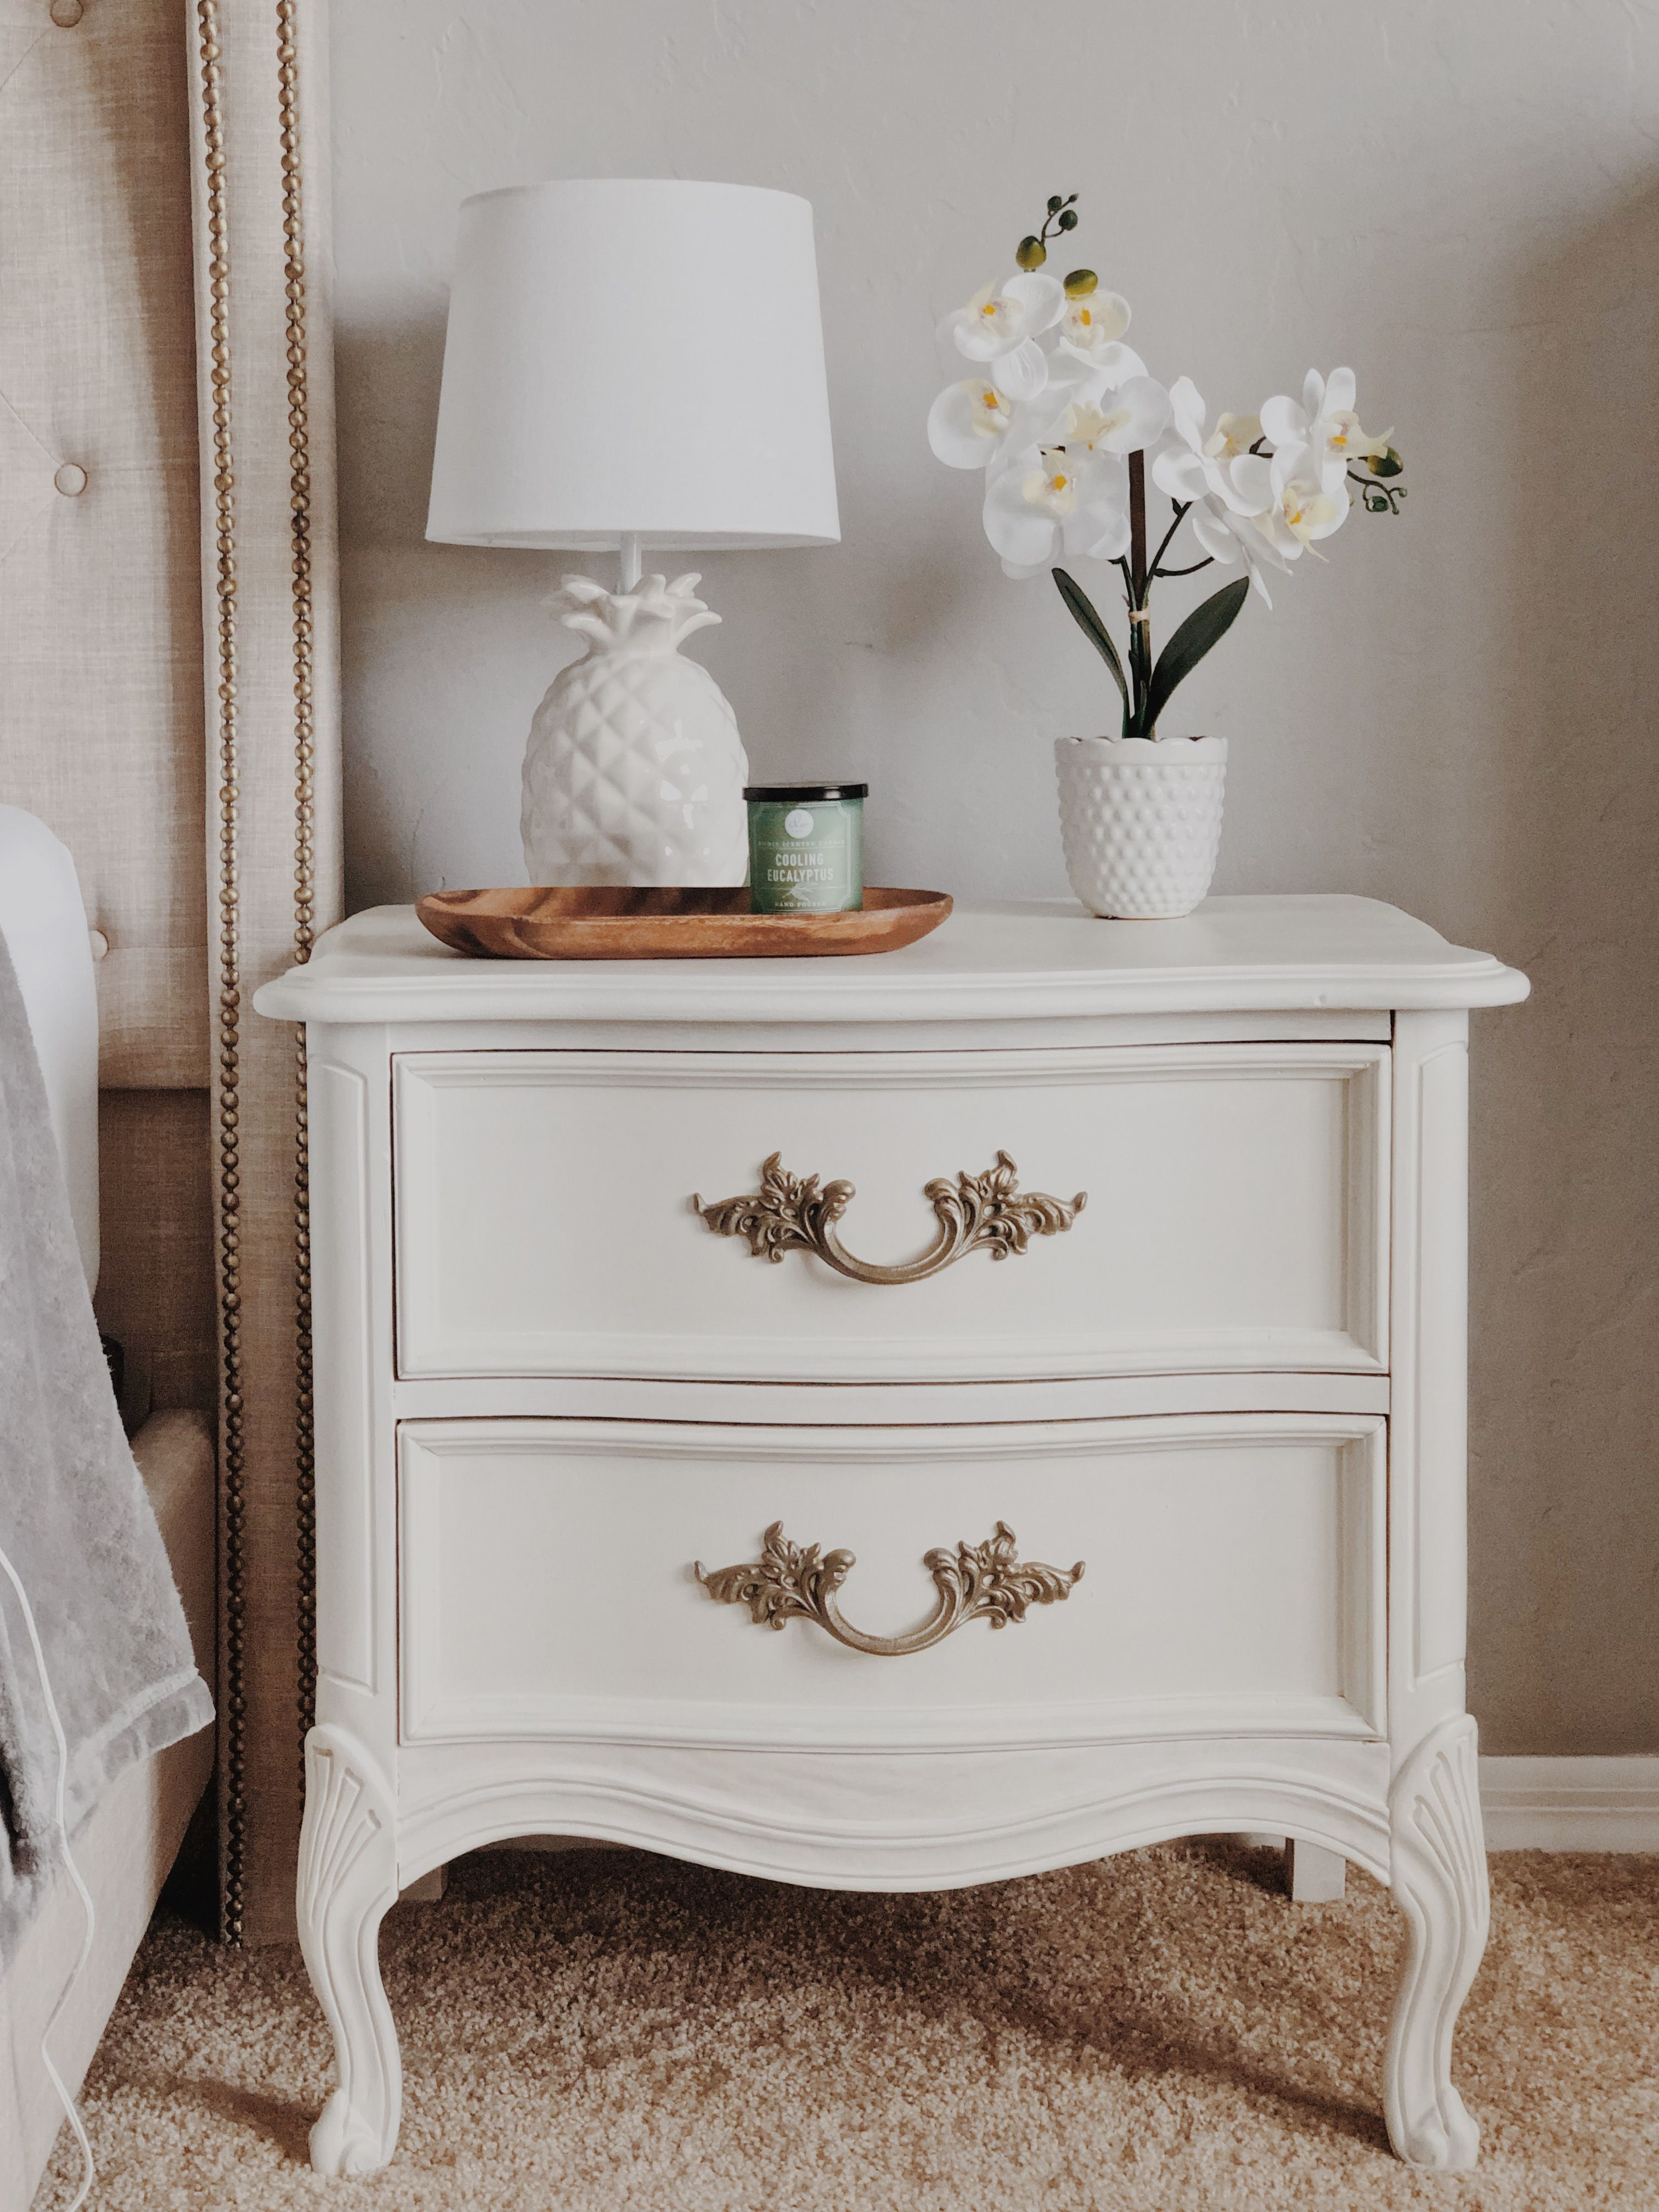 DIY makeover on an antique French Provincial nightst